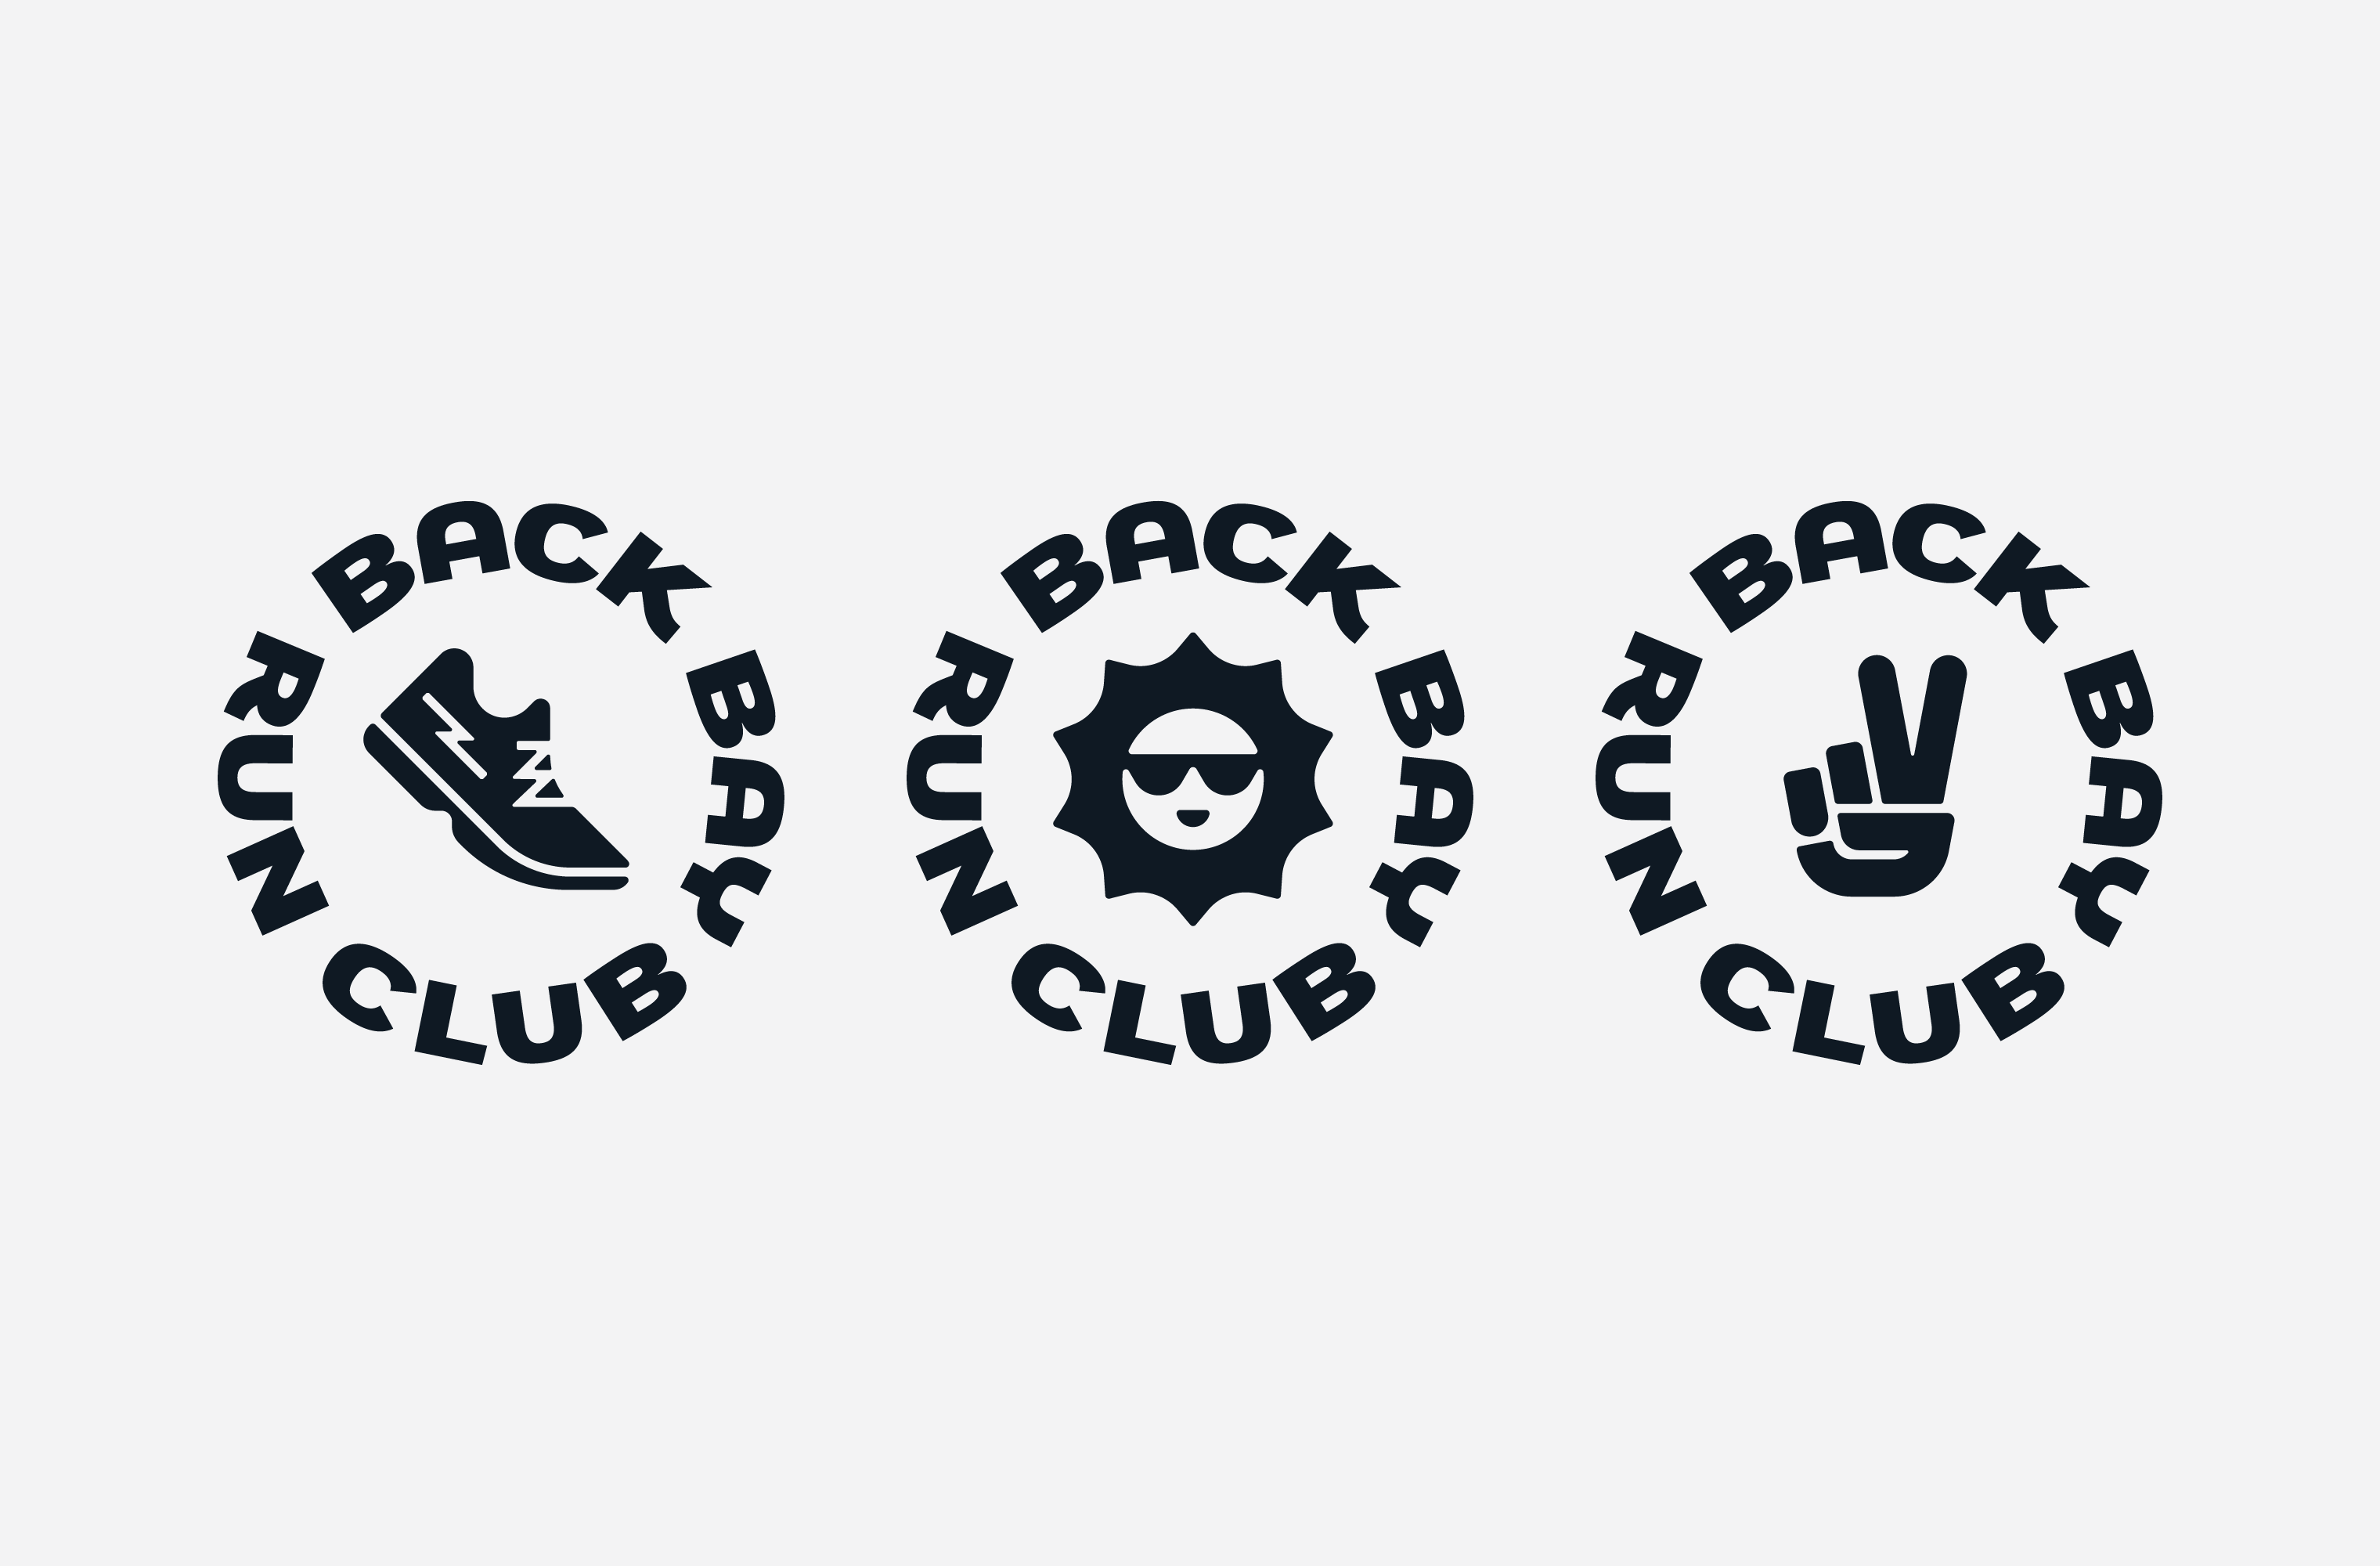 Three black Back Bay Run Club badges featuring illustrations of a sneaker, sunshine and peace sign